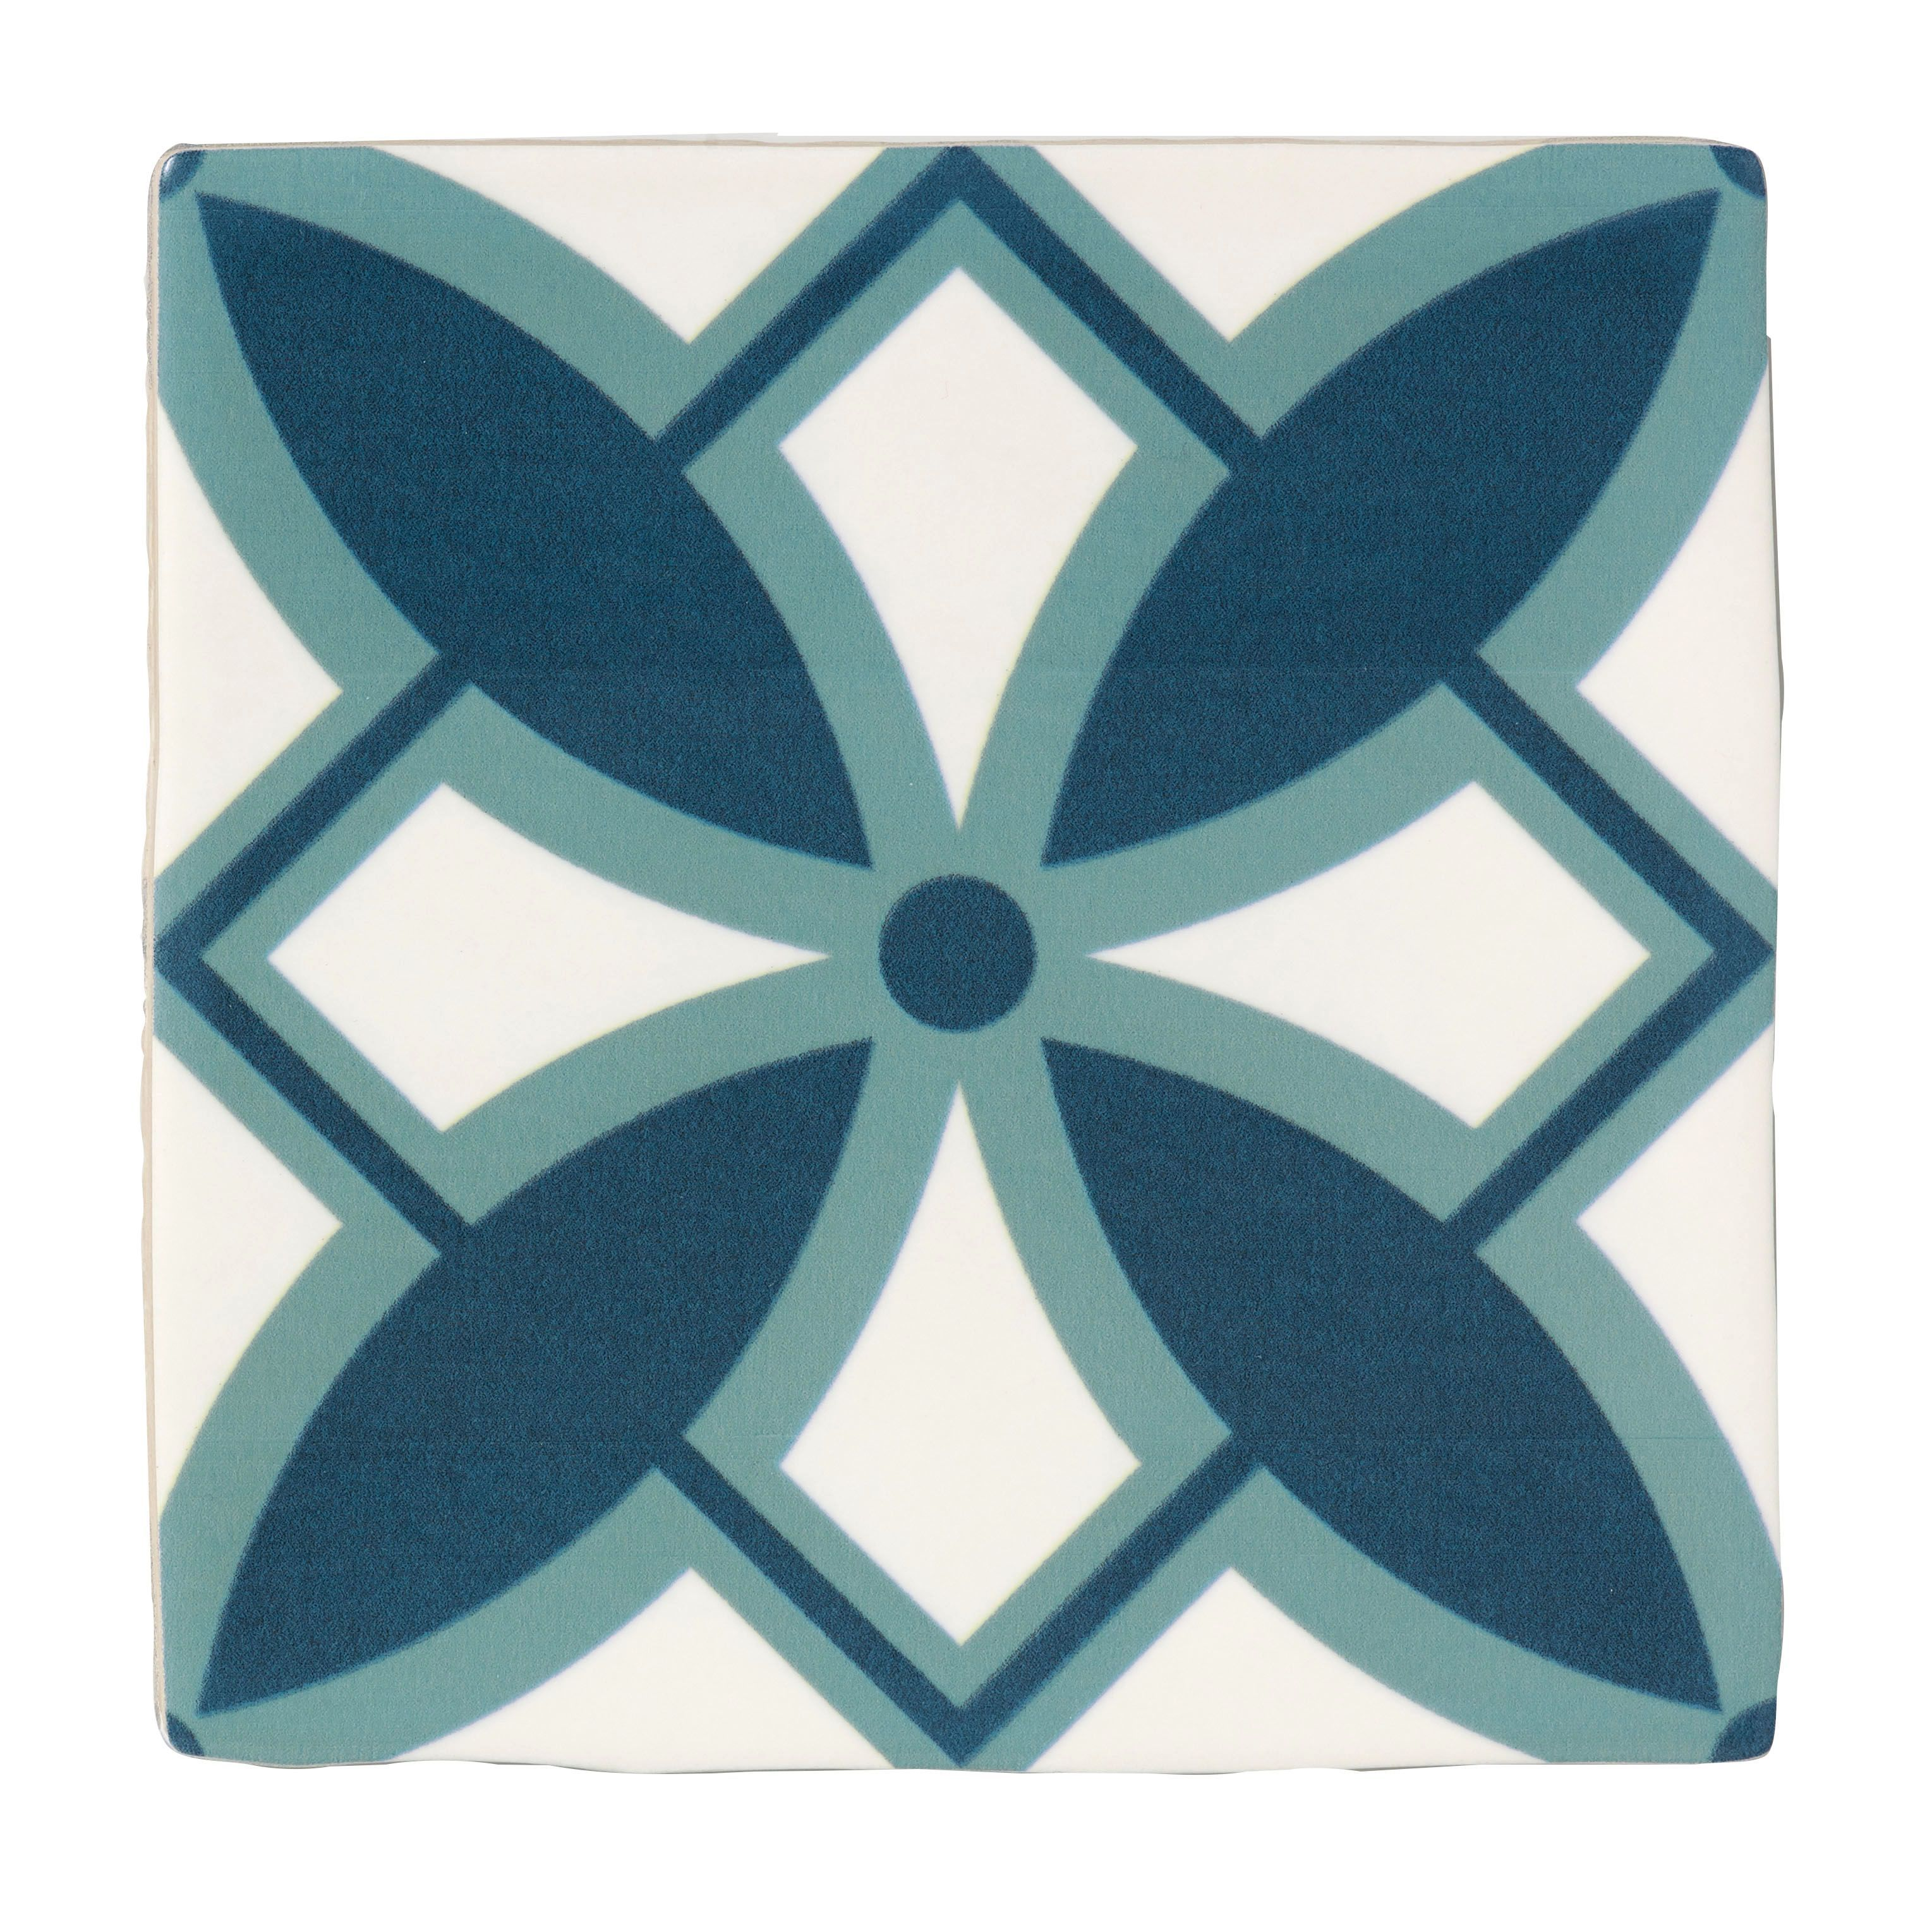 Fusion blue white satin patterned ceramic wall tile pack of 25 fusion blue white satin patterned ceramic wall tile pack of 25 l140mm w140mm dailygadgetfo Image collections